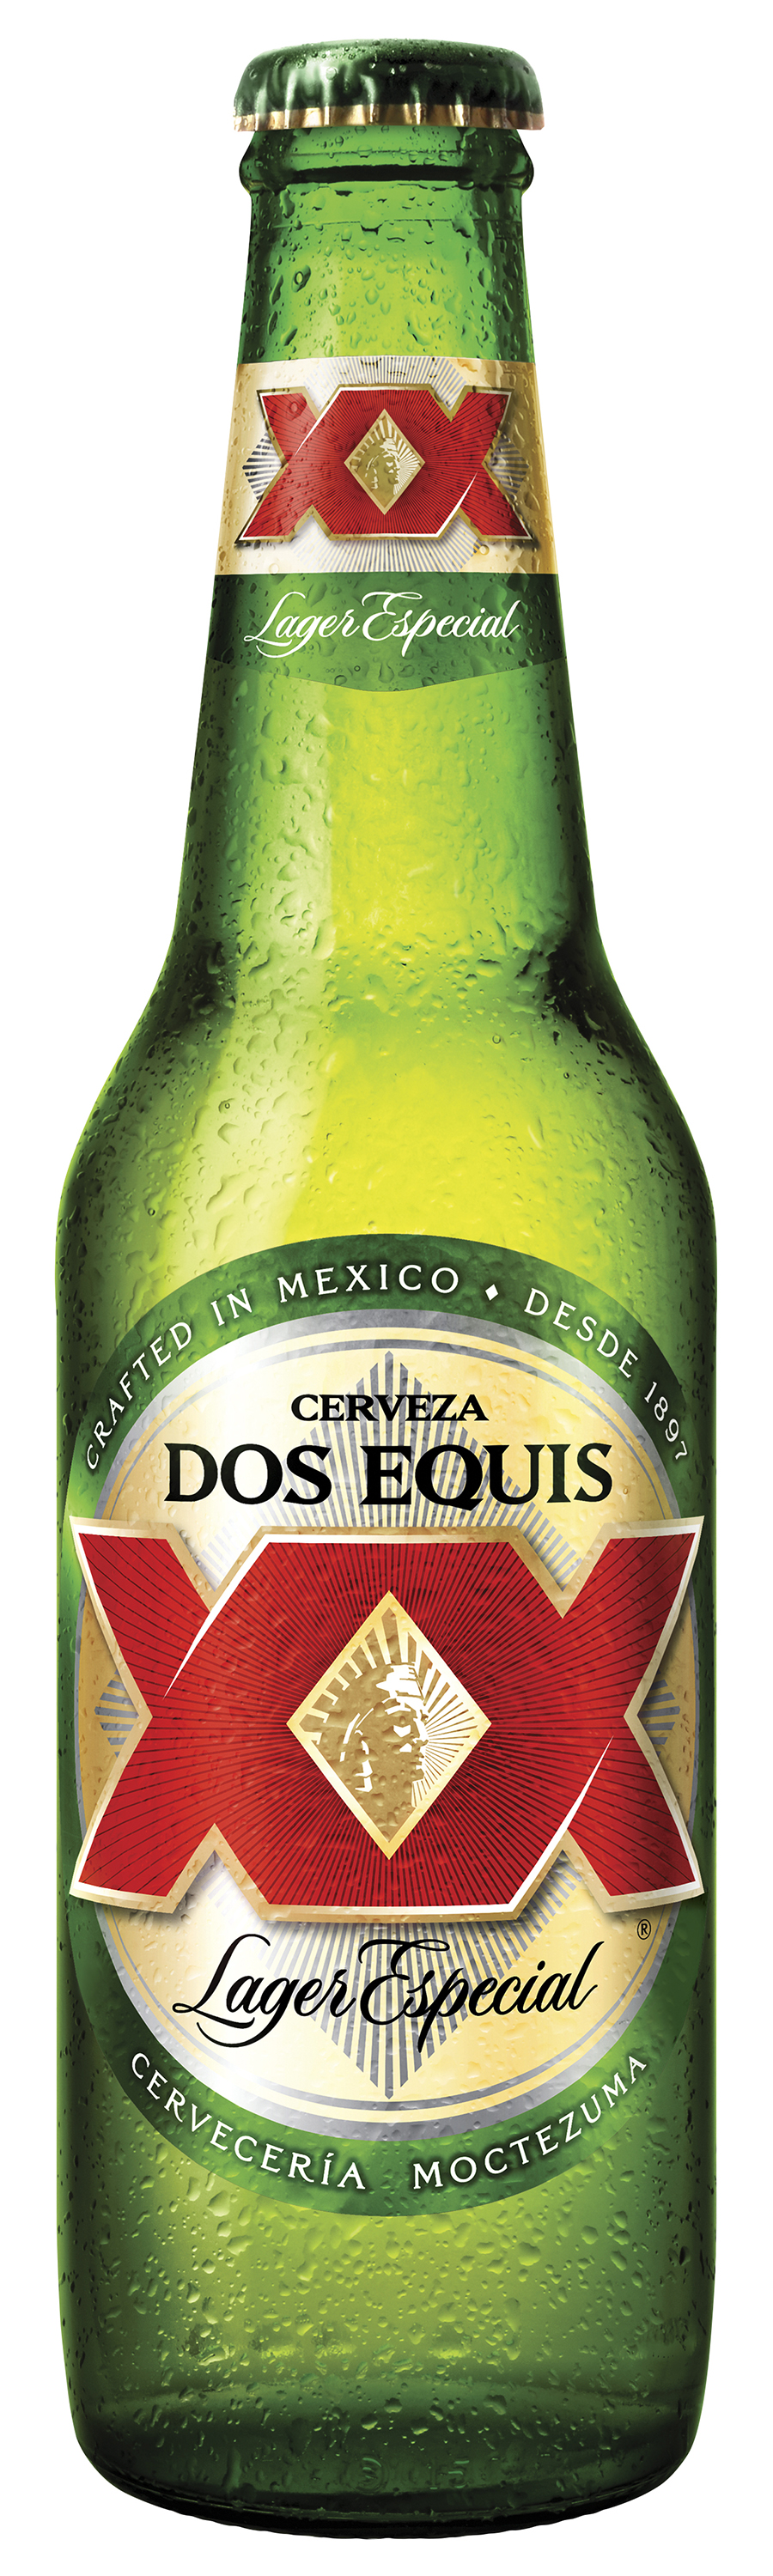 Dos Equis Launches Summer Marketing Campagin